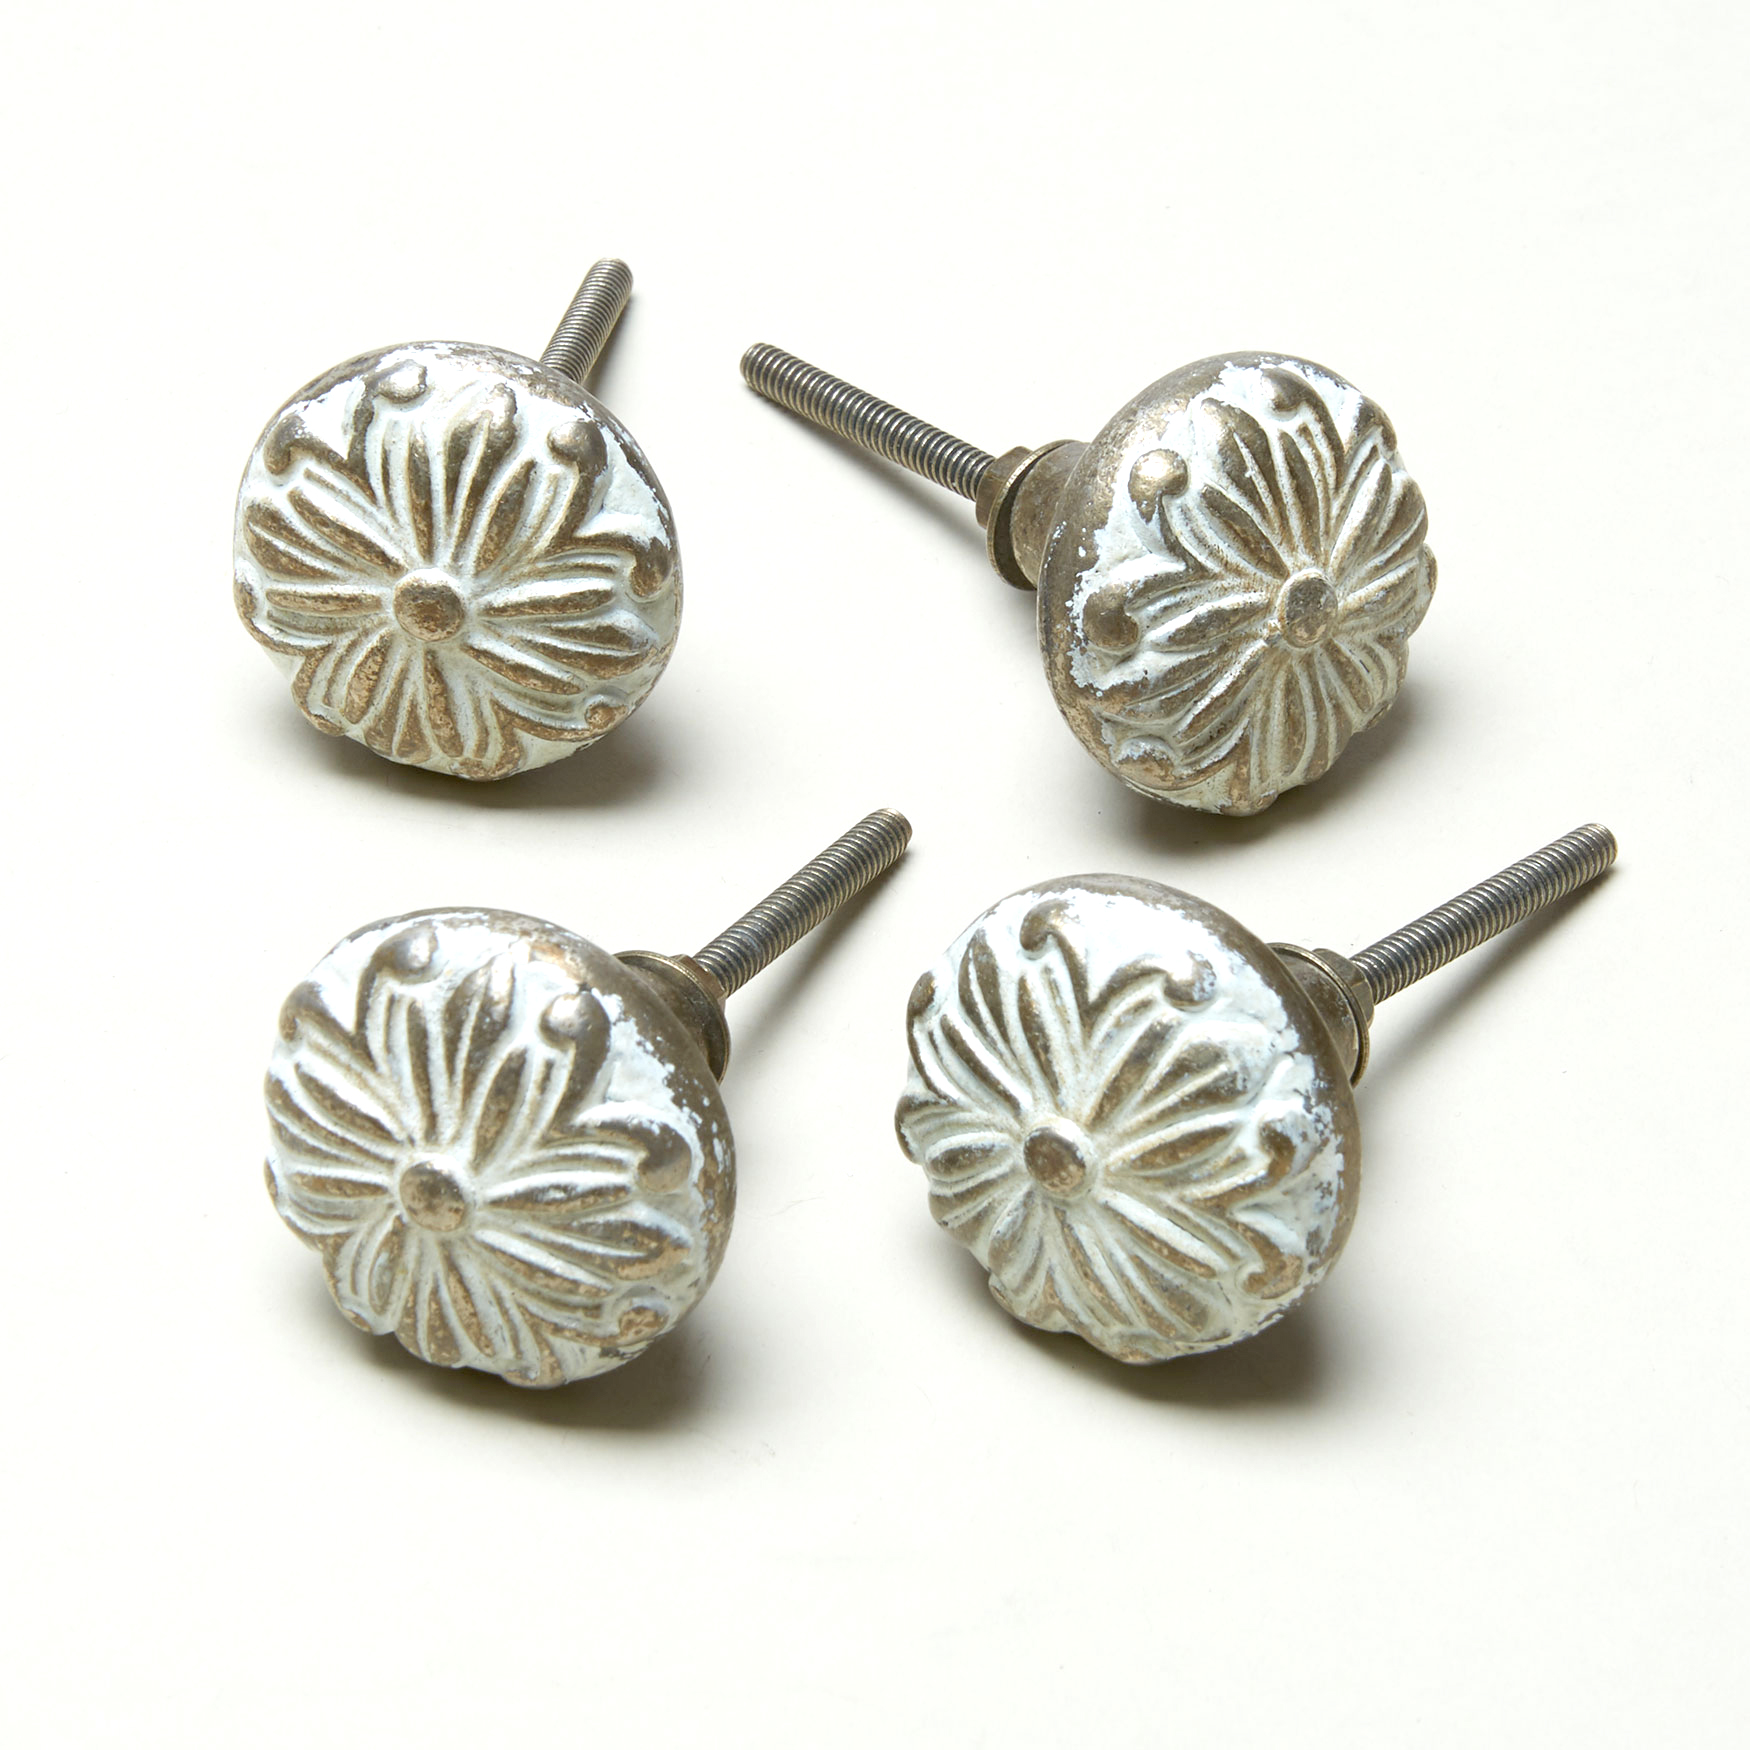 Assorted Vintage-Style Knobs, Set of 4 , WHITE GOLD